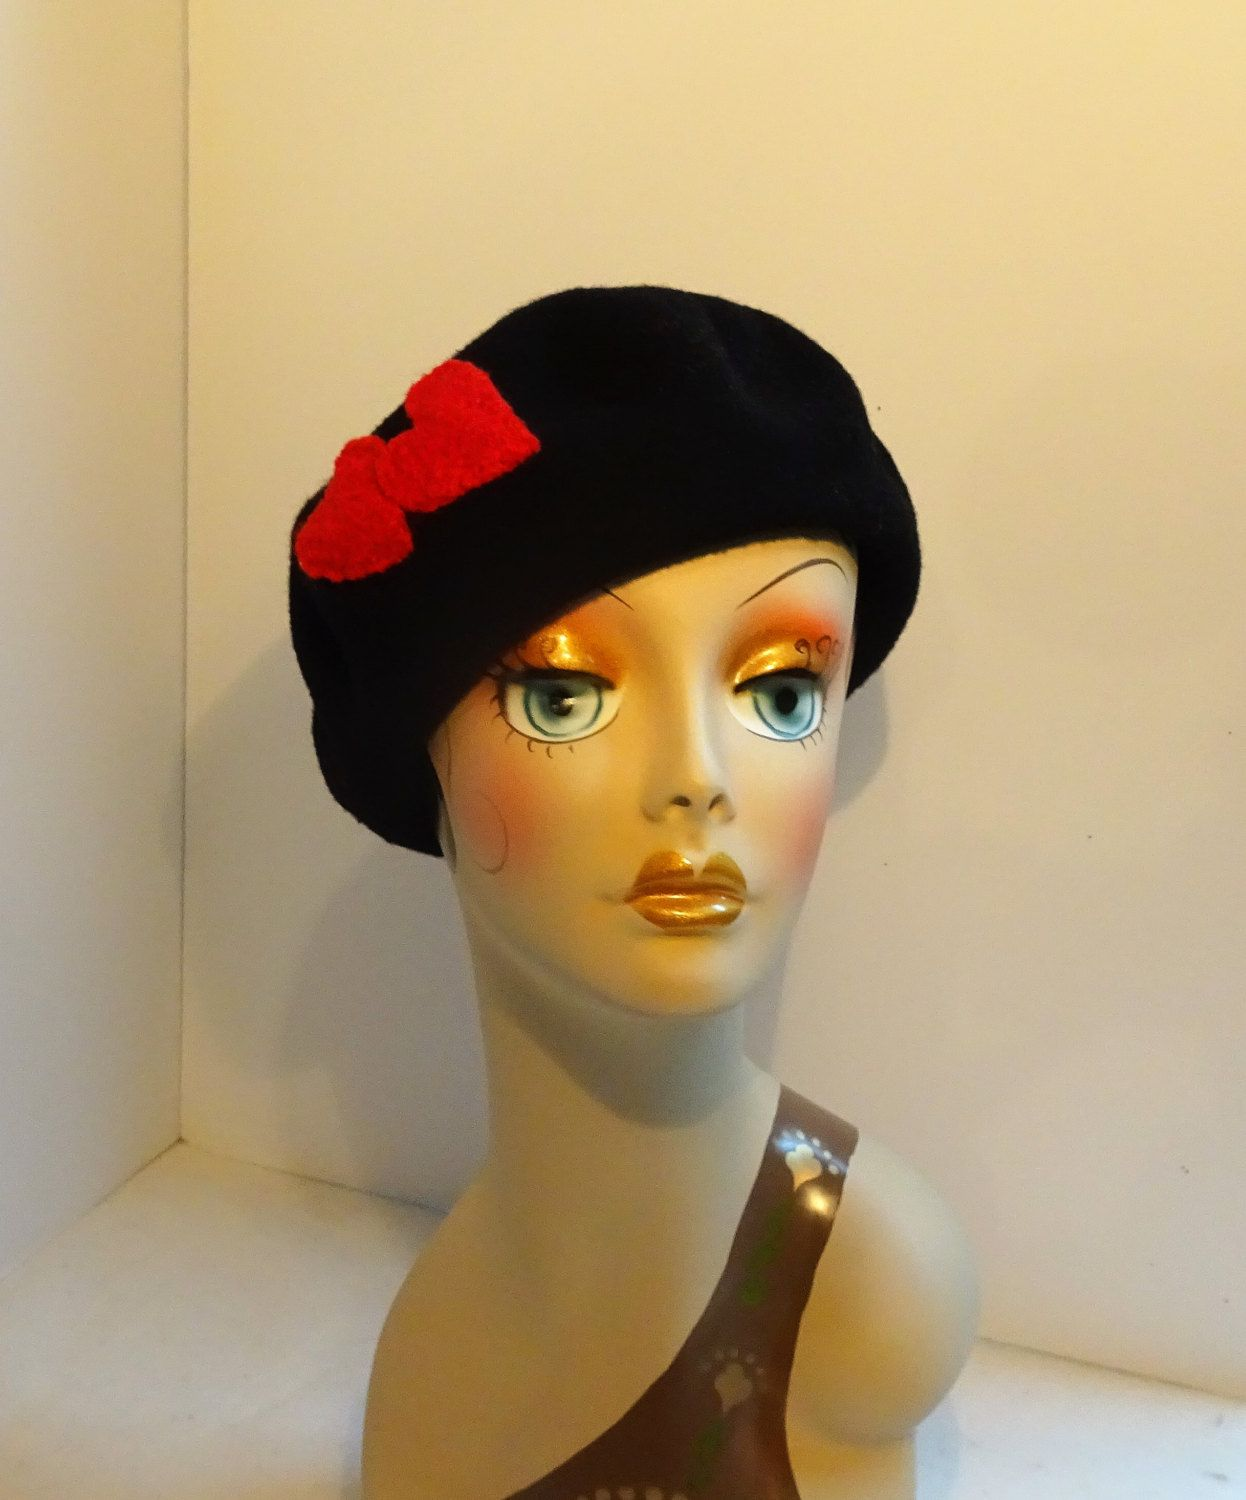 bbabcb73a6715 French Beret Valentine Look Black Wool With Red Hearts by MMMHats on Etsy